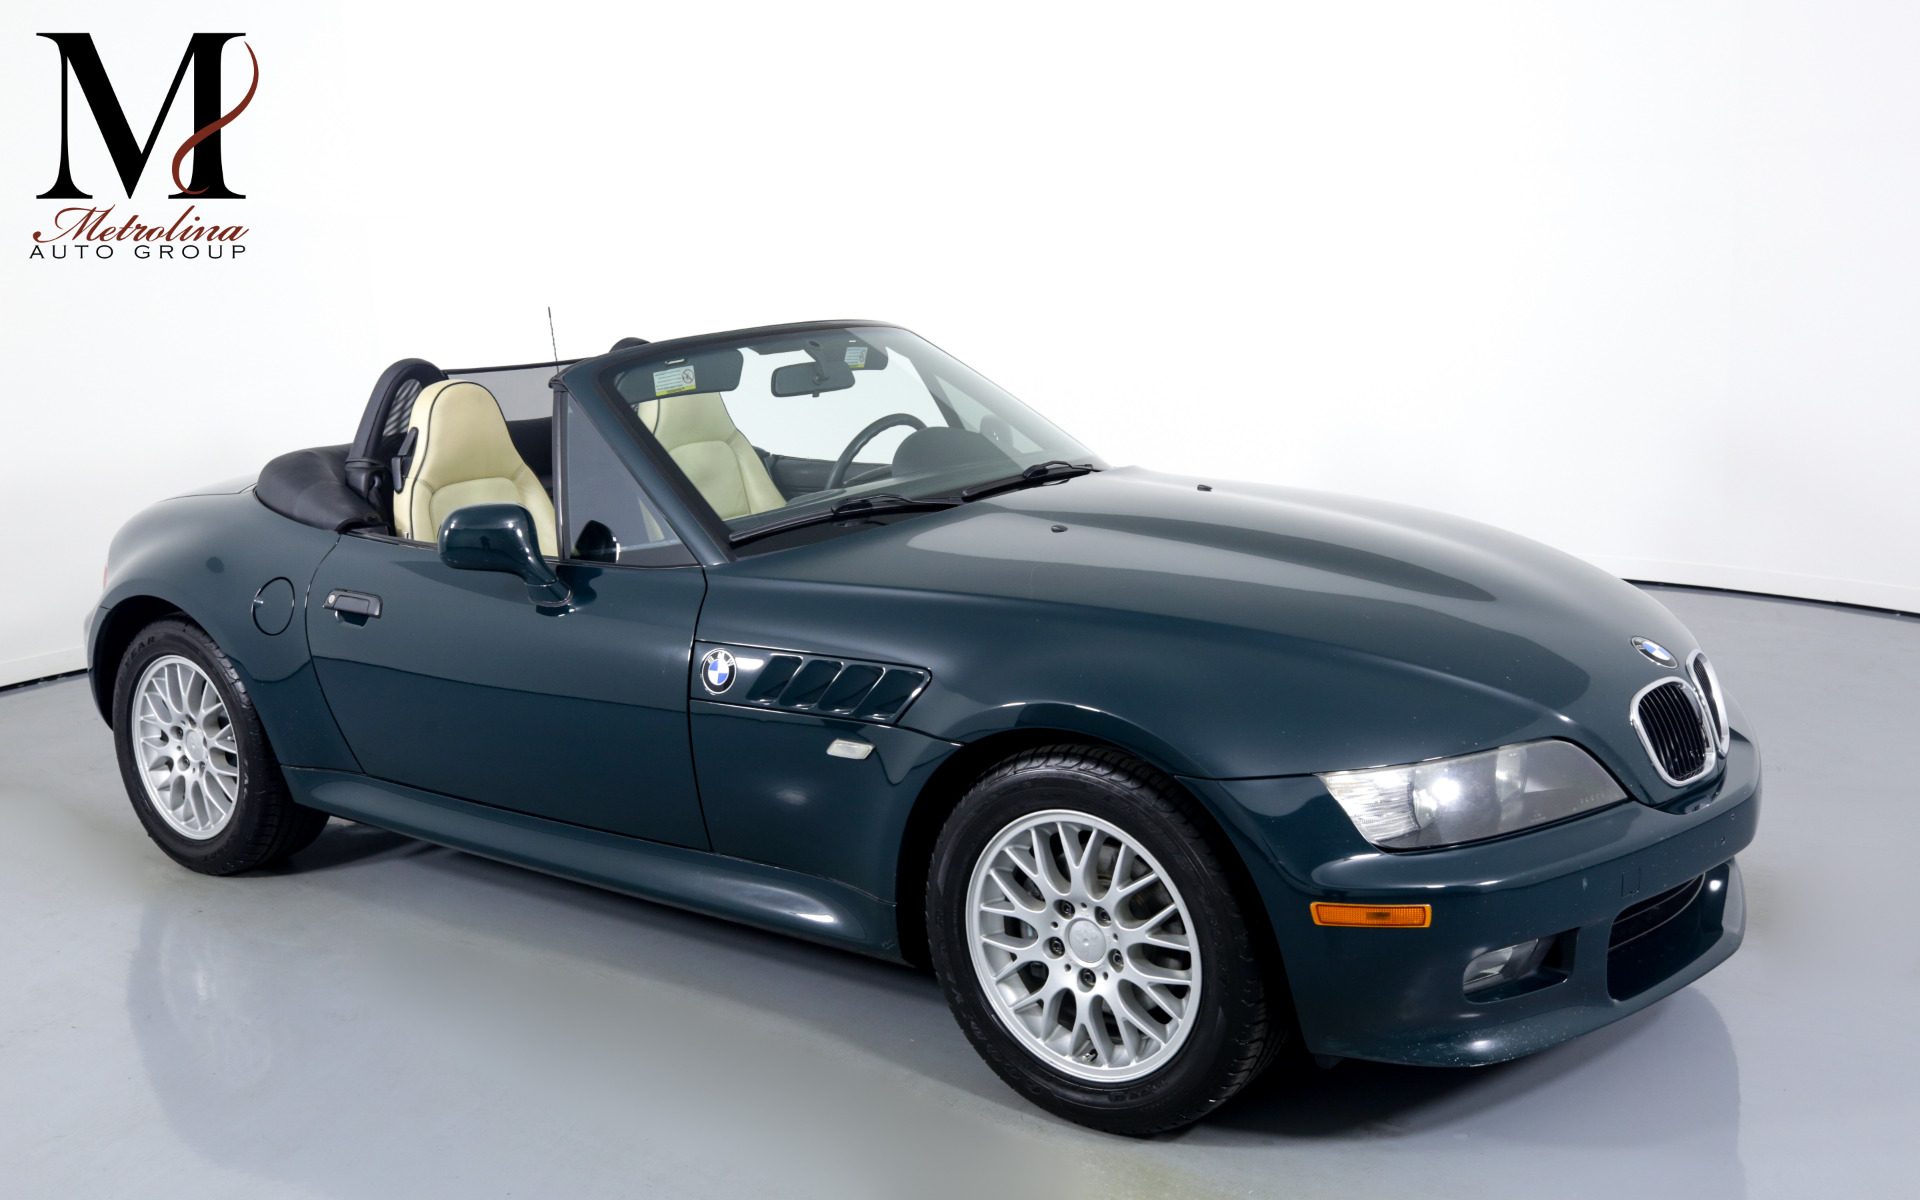 Used 1999 BMW Z3 2.8 for sale $14,996 at Metrolina Auto Group in Charlotte NC 28217 - 1